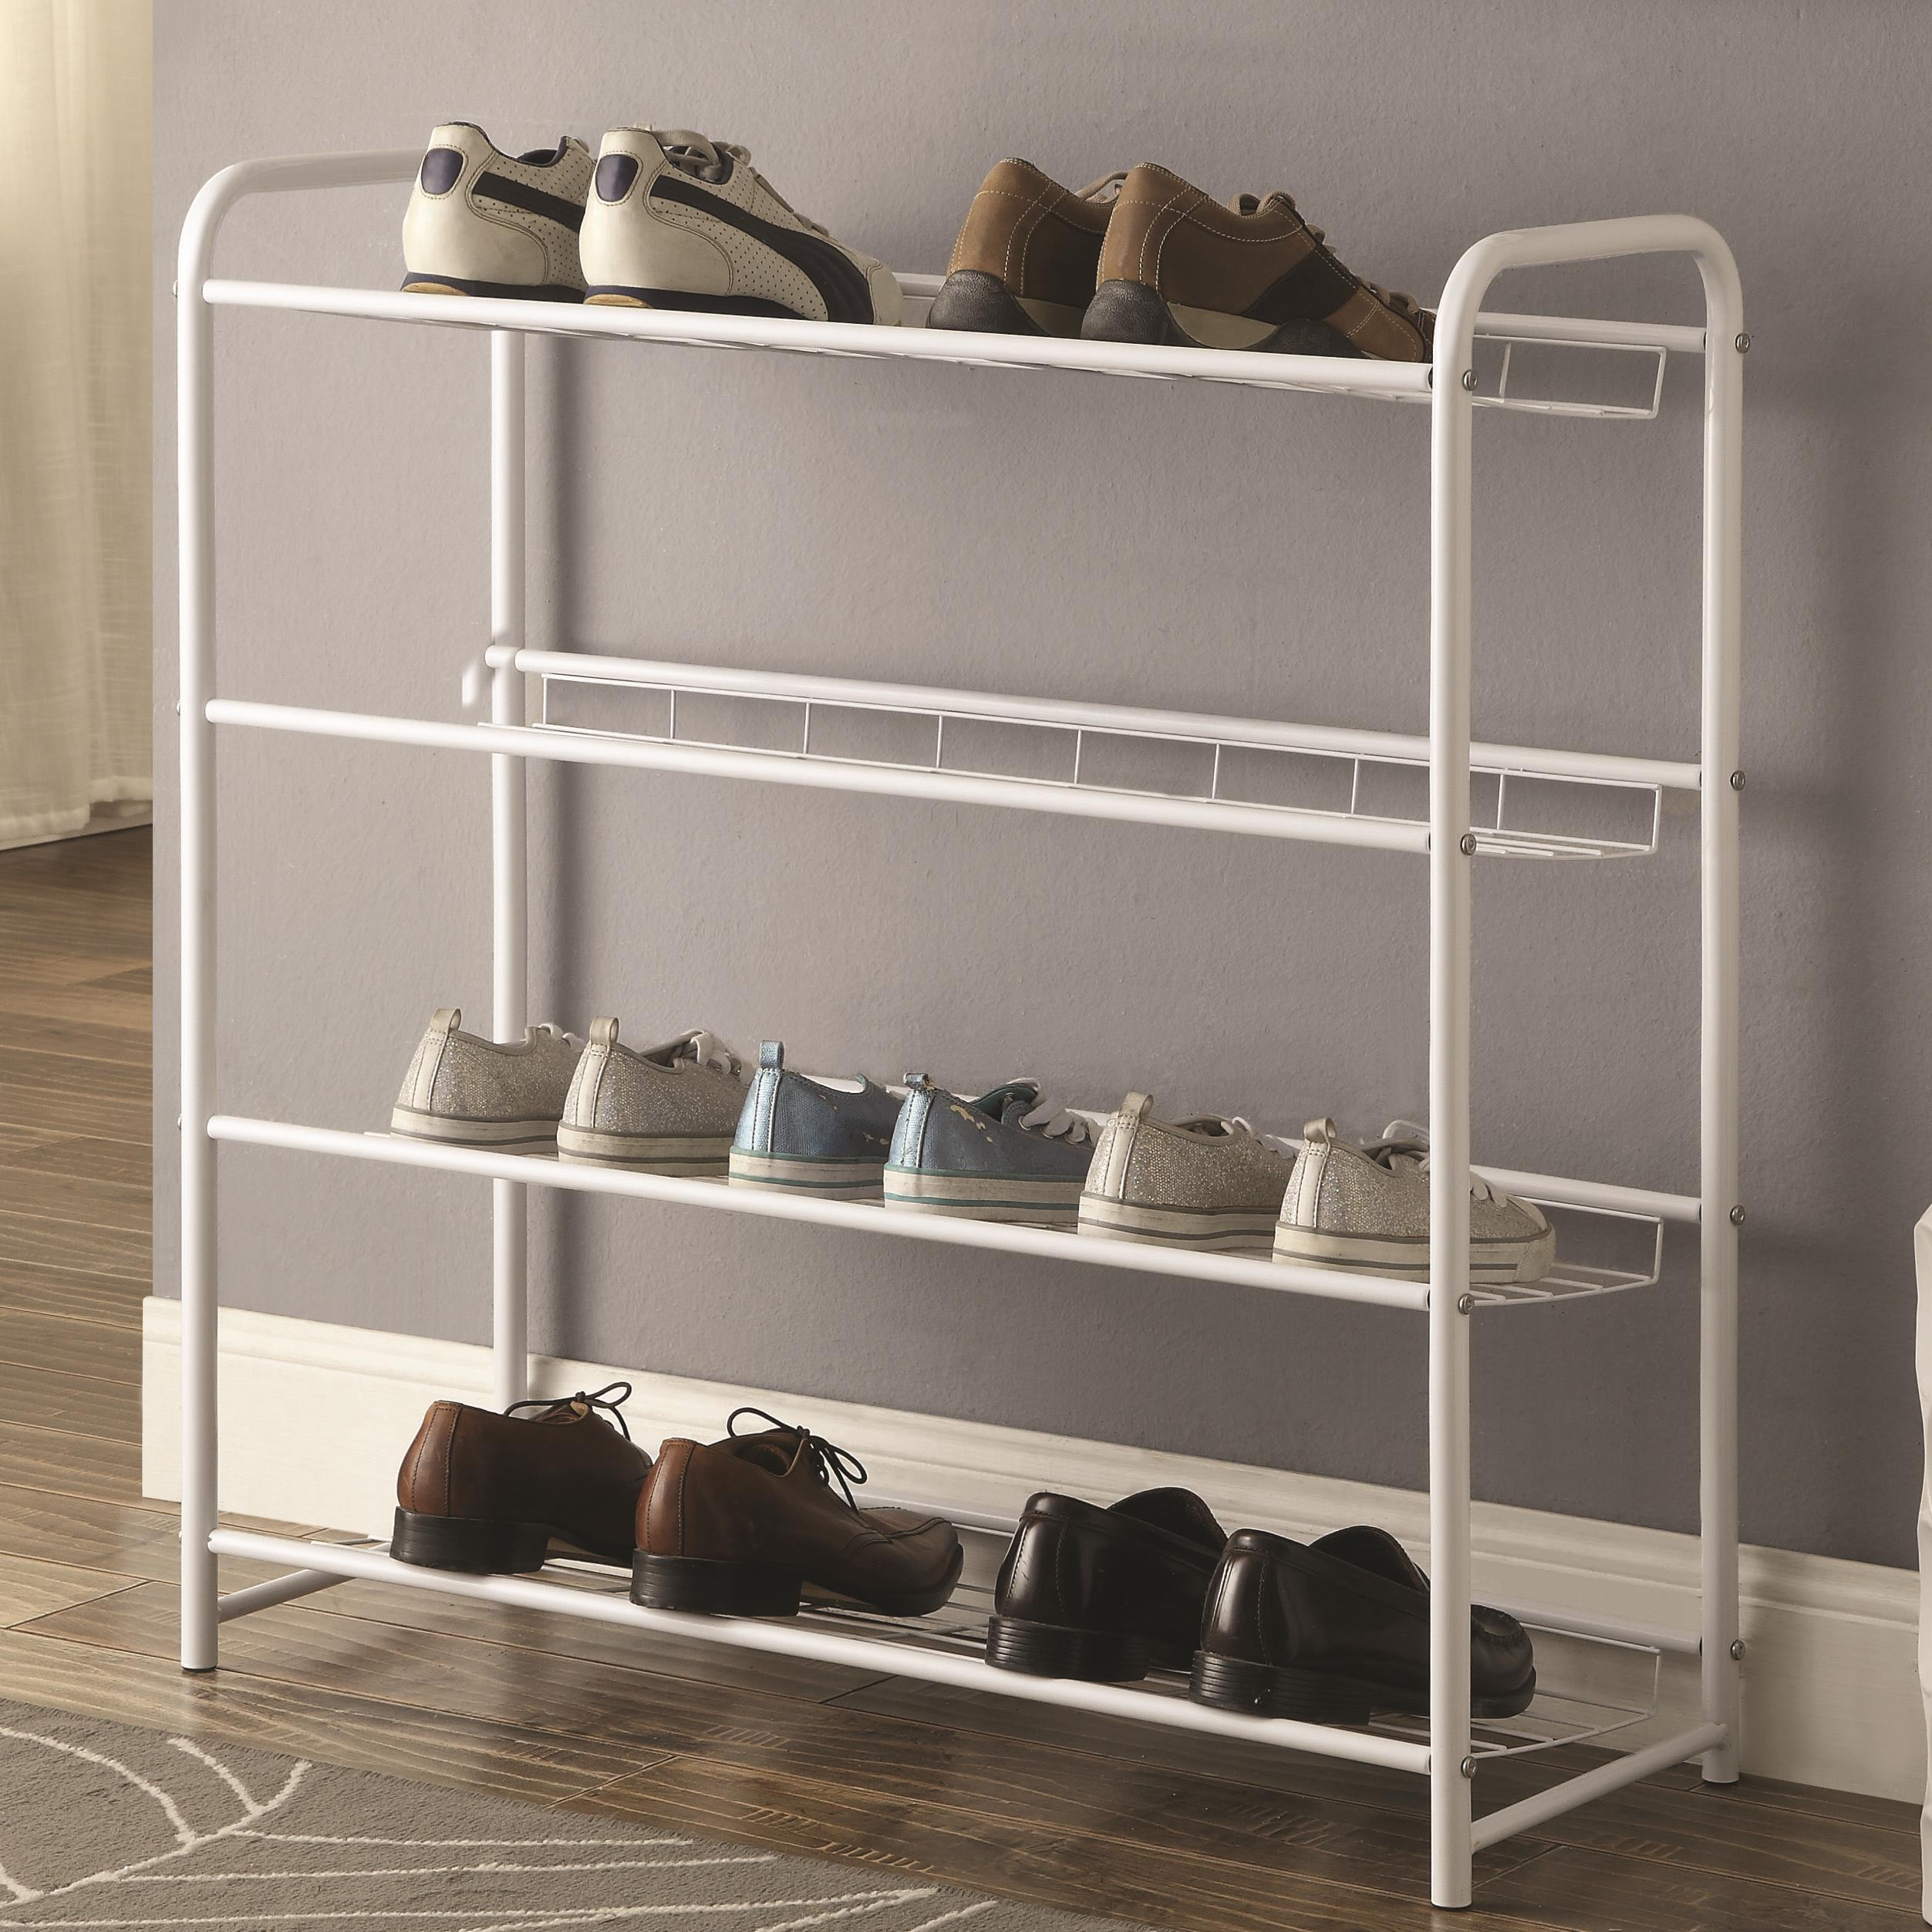 Coaster Accent Racks Shoe Rack - Item Number: 950017